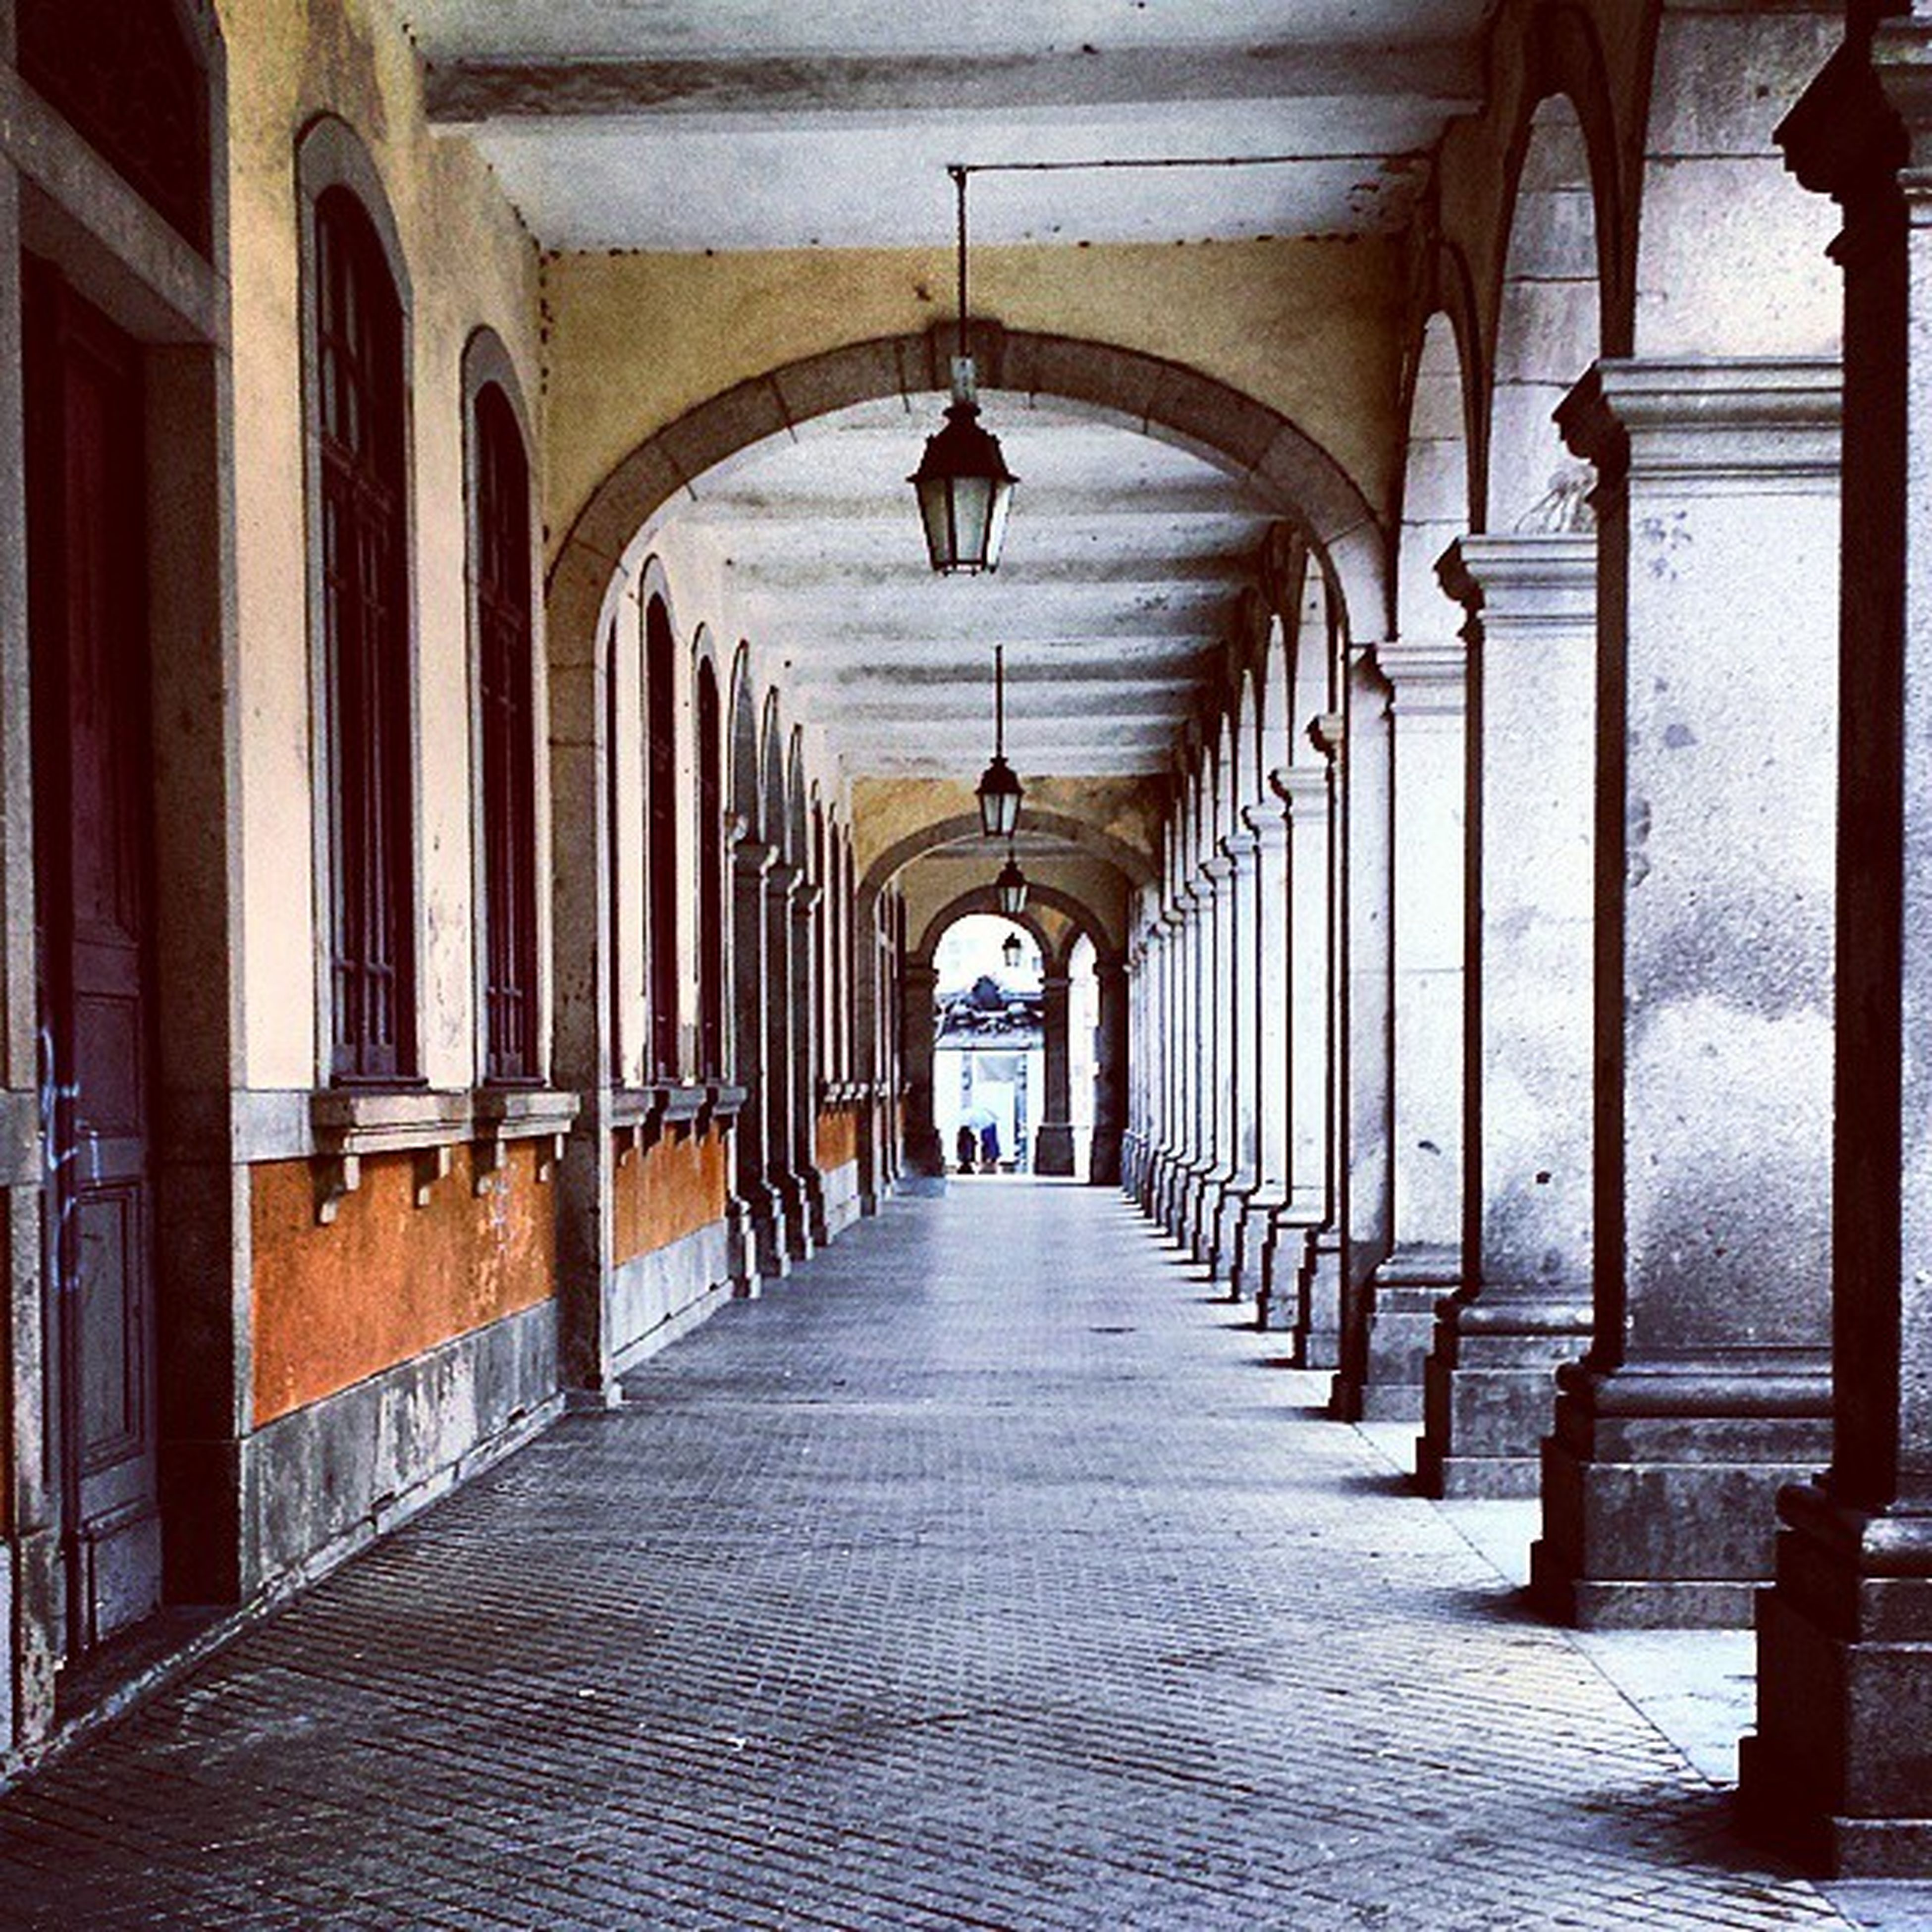 indoors, architecture, the way forward, corridor, built structure, diminishing perspective, ceiling, arch, architectural column, in a row, colonnade, empty, vanishing point, column, interior, flooring, history, building, long, narrow